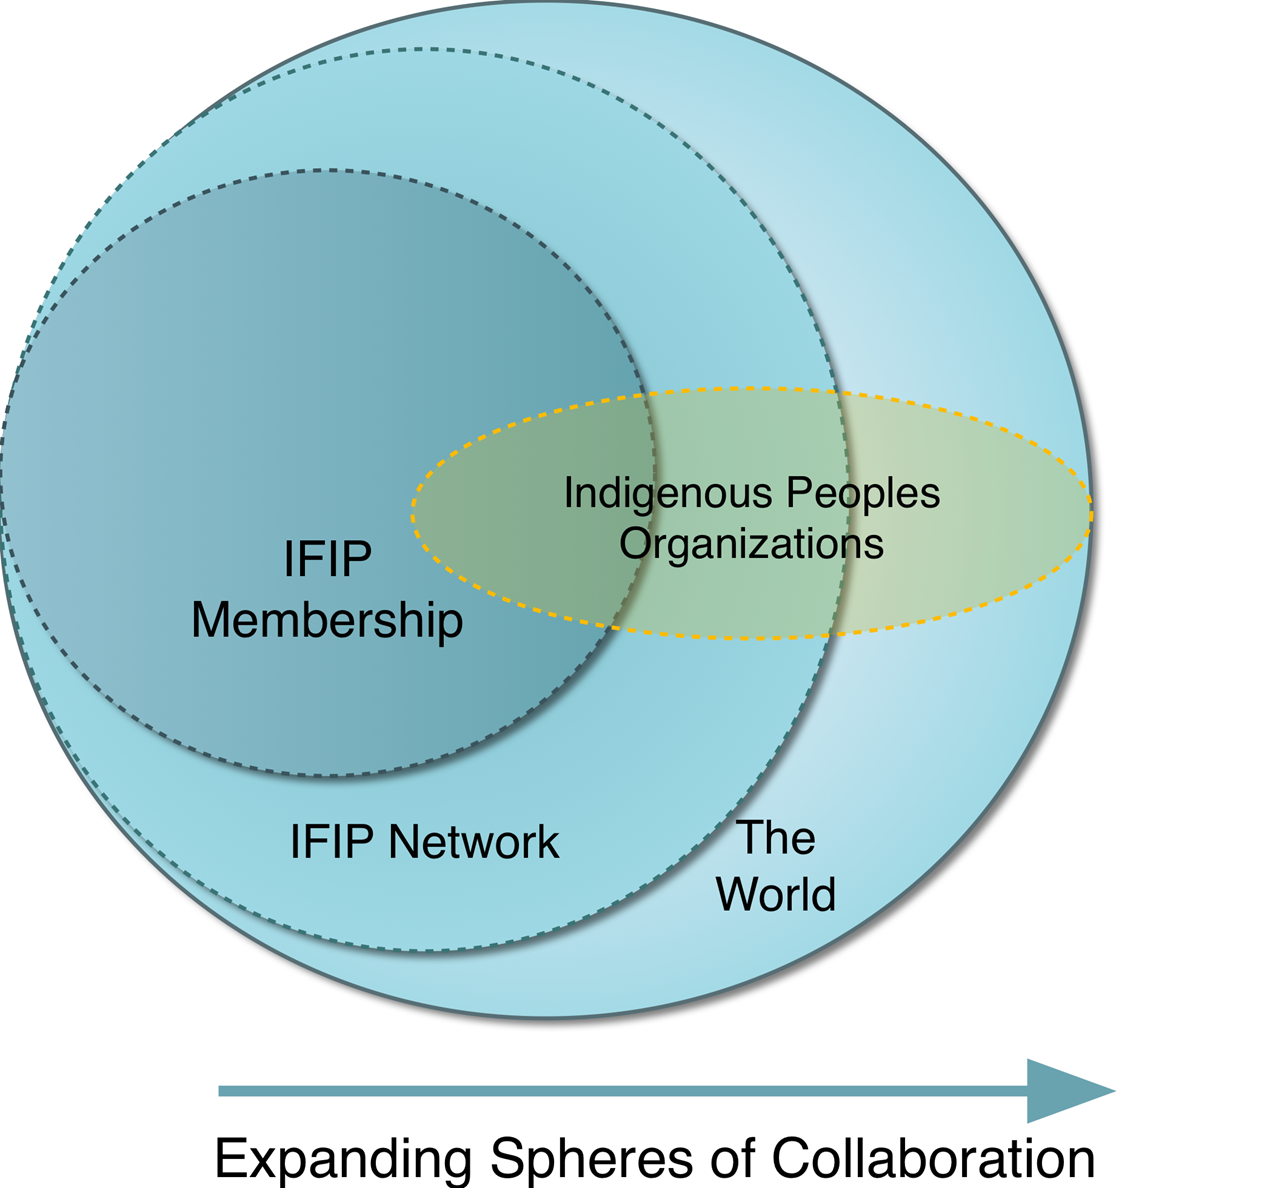 international funders for indigenous peoples strategic framework taking a systems approach to improve funding for issues of importance to indigenous peoples ifip supports its members to expand the network as a community